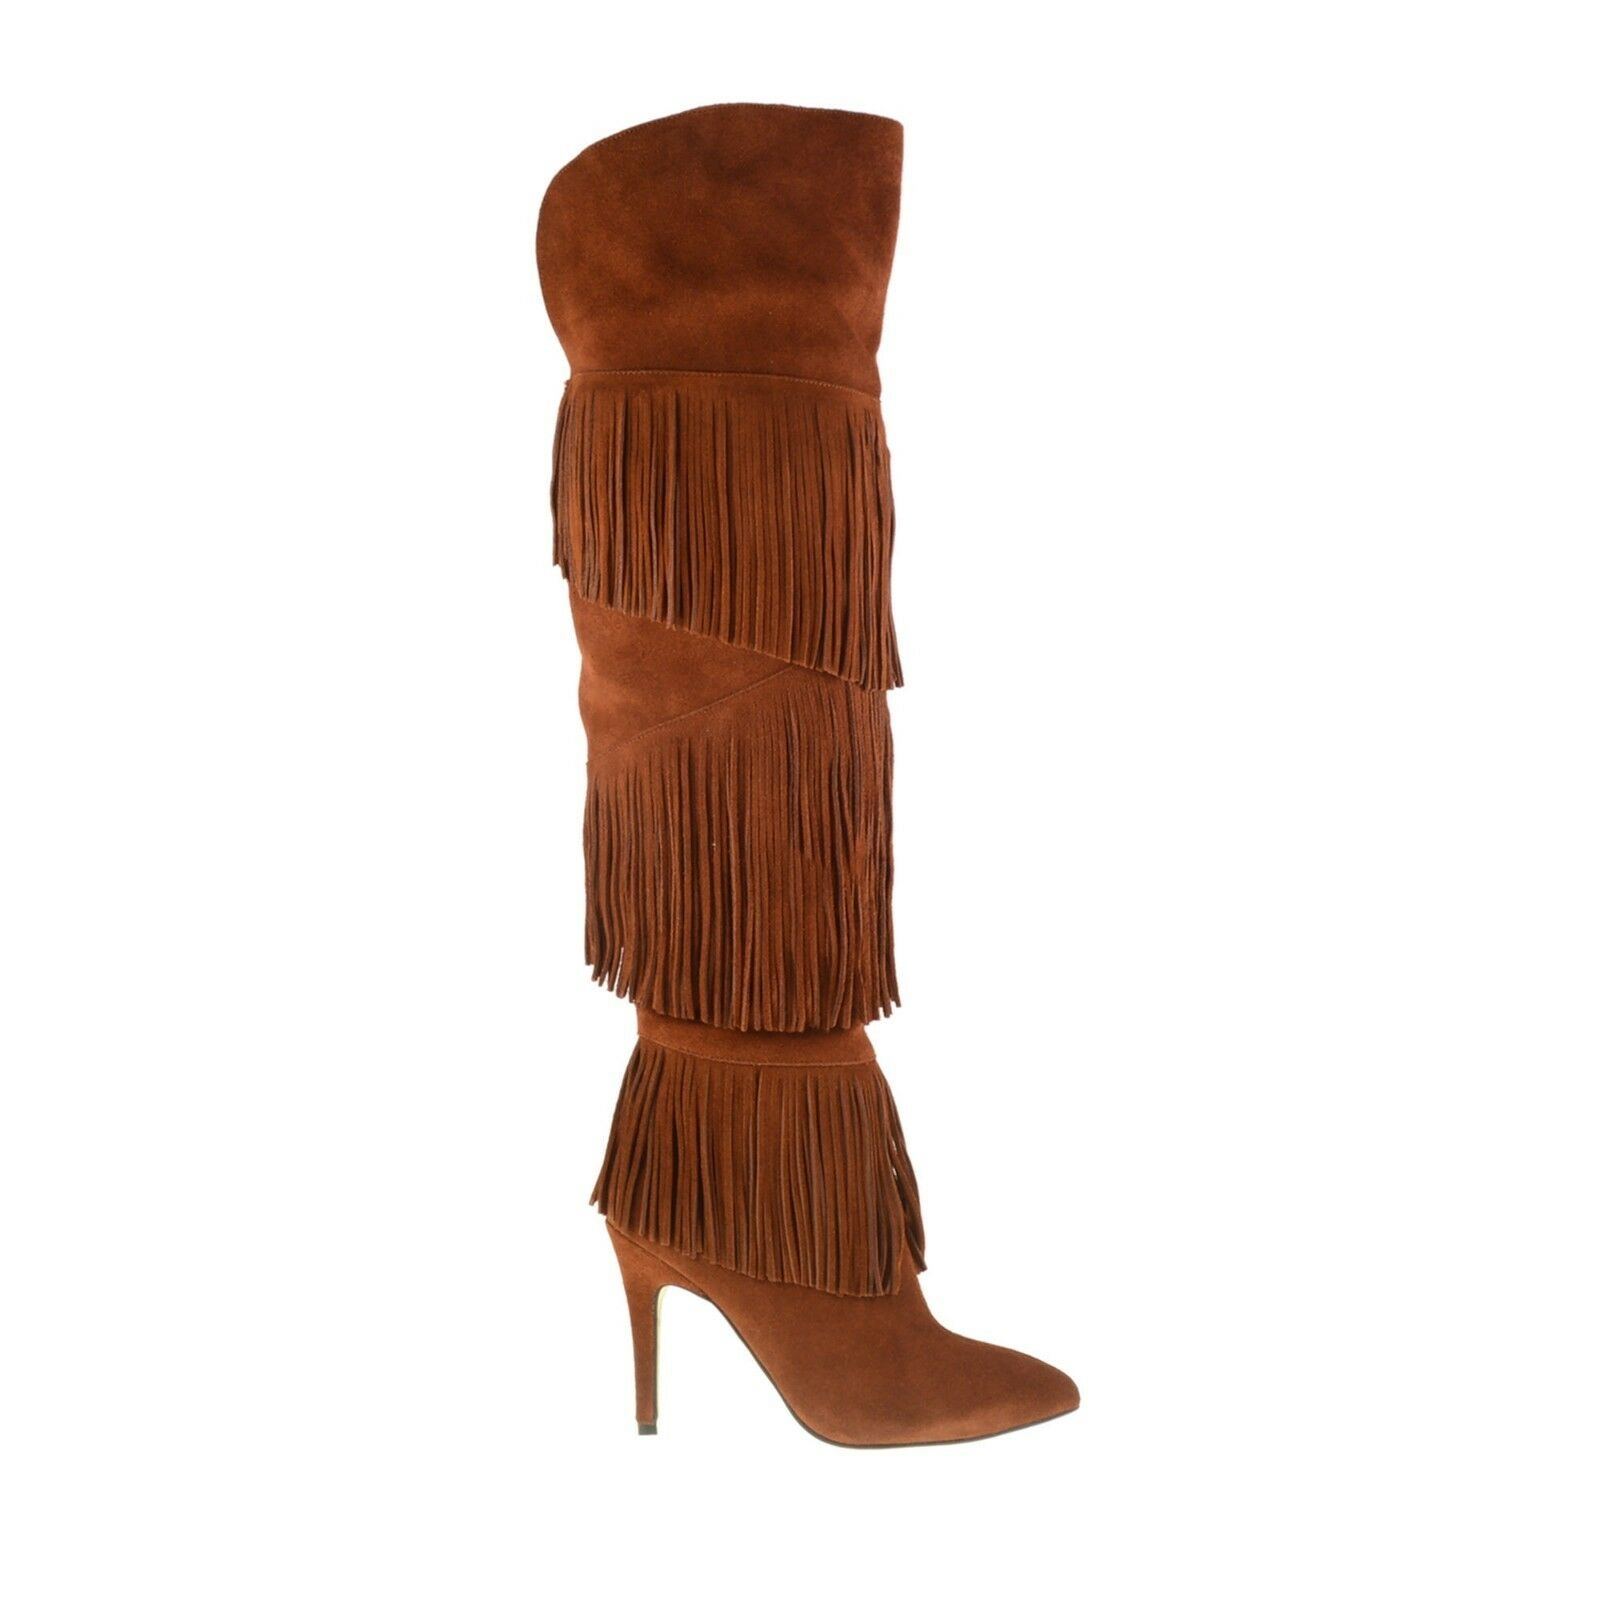 Chinese Laundry Kristin Cavallari Chance Brown Fringe Over Over Fringe the Knee Boot 6 NEW d04009